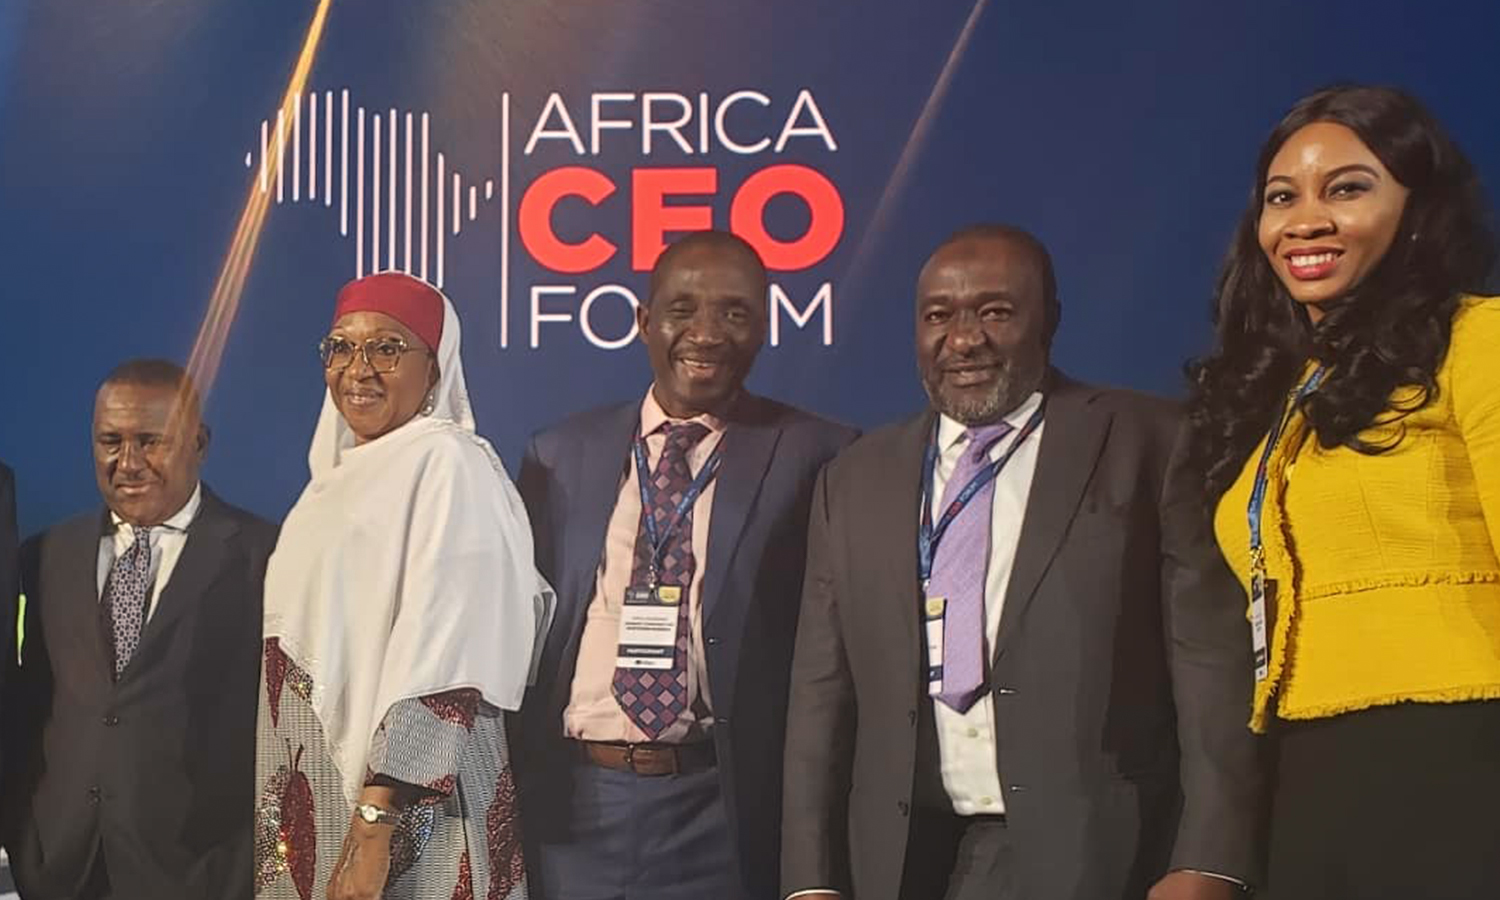 Pearl Uzokwe, Director Goveernance & Sustainability Sahara Group at Africa CEO Forum 2019